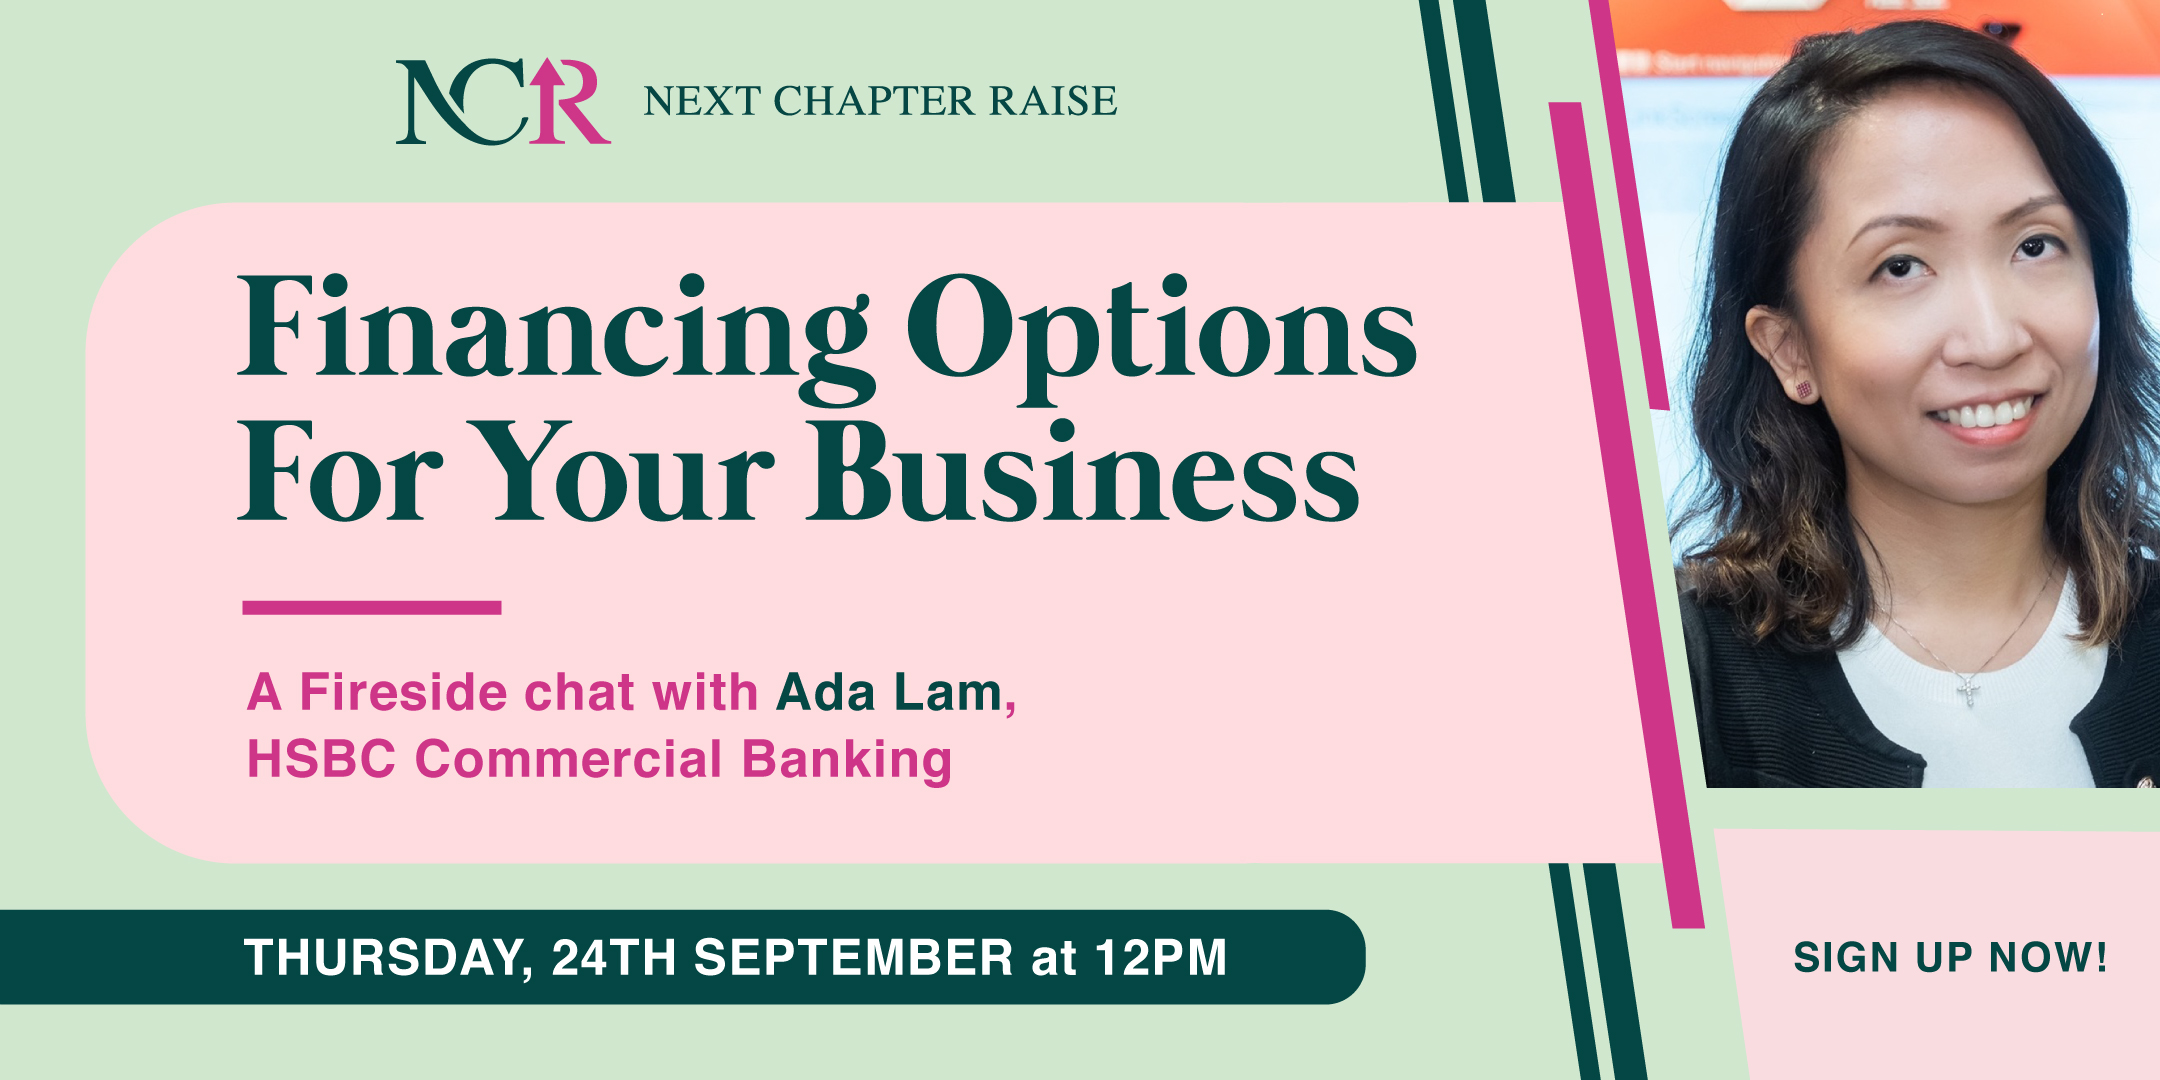 Fireside Chat with Ada Lam